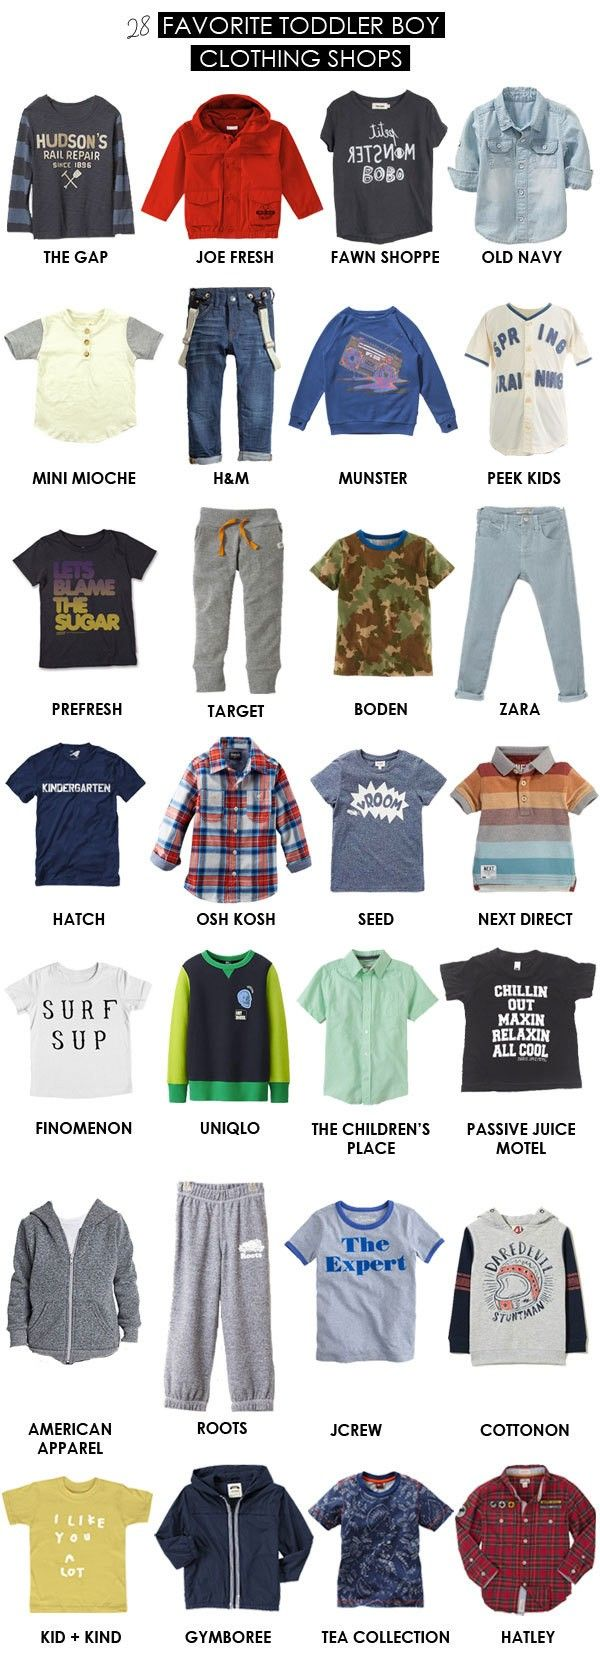 db26ab28c Toddler bog clothes stores - your ultimate guide to the best places ...